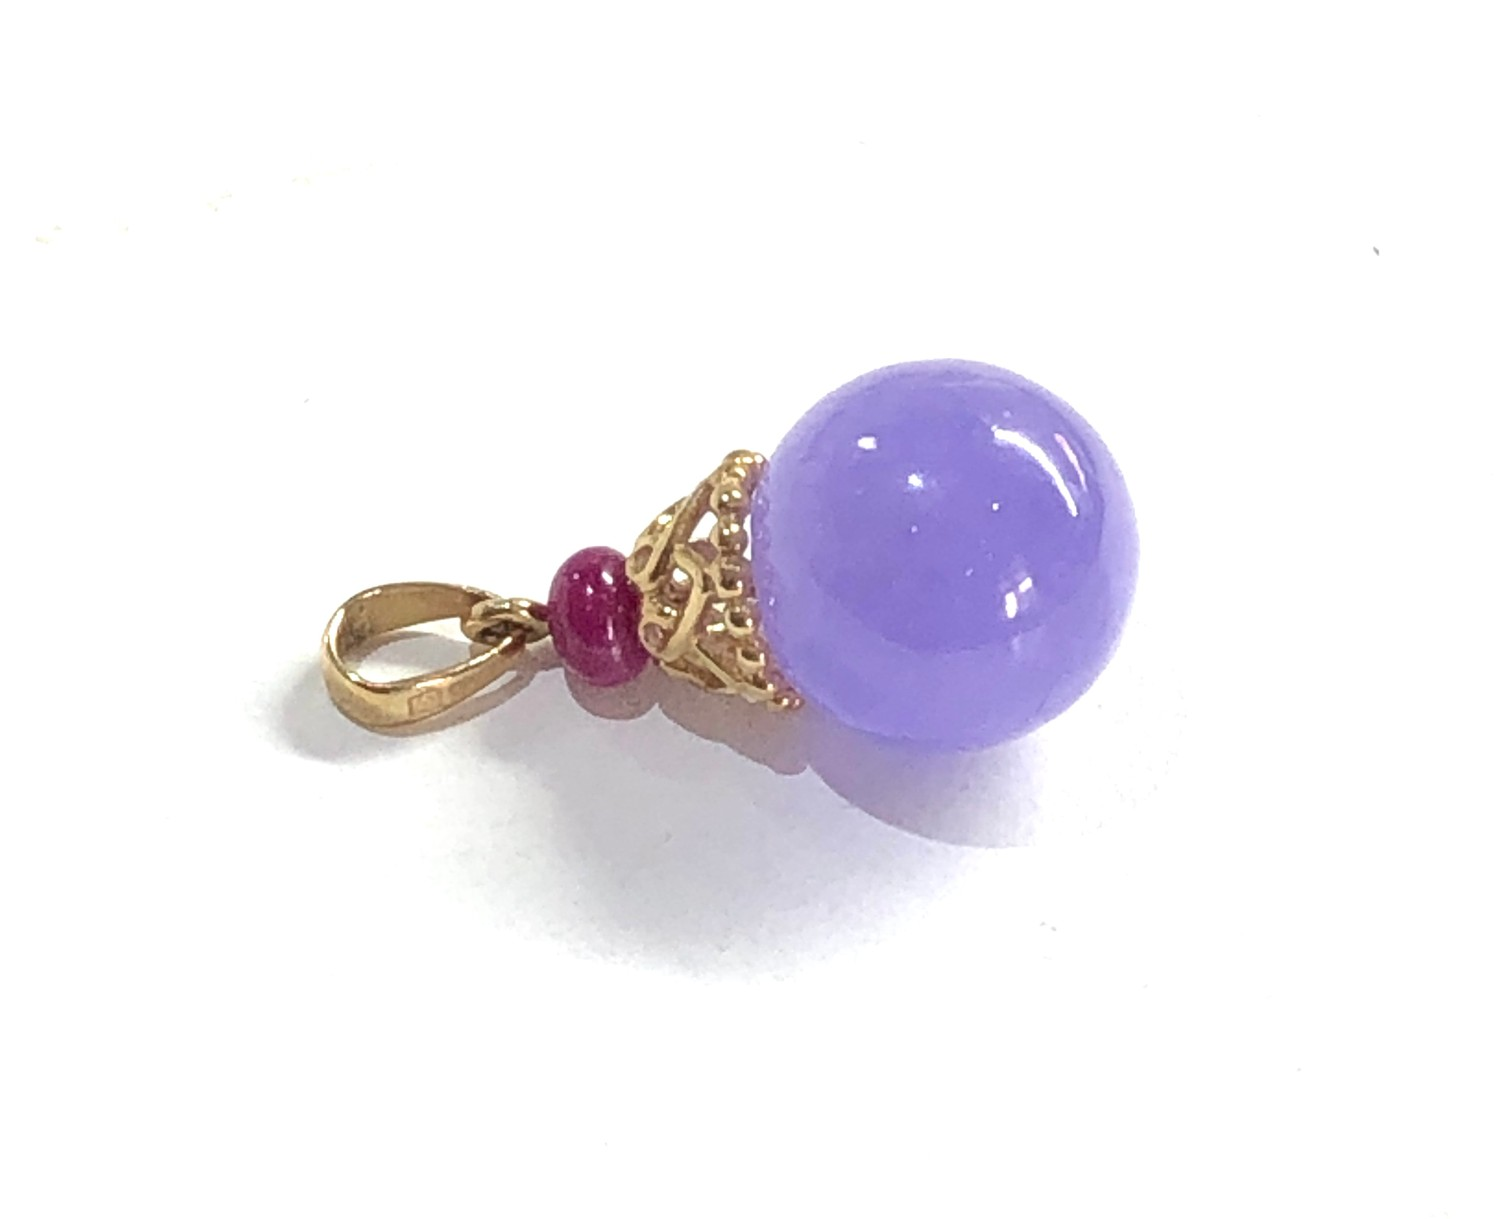 9ct gold lilac jade and ruby pendant measures approx 2.3cm drop weight 3g